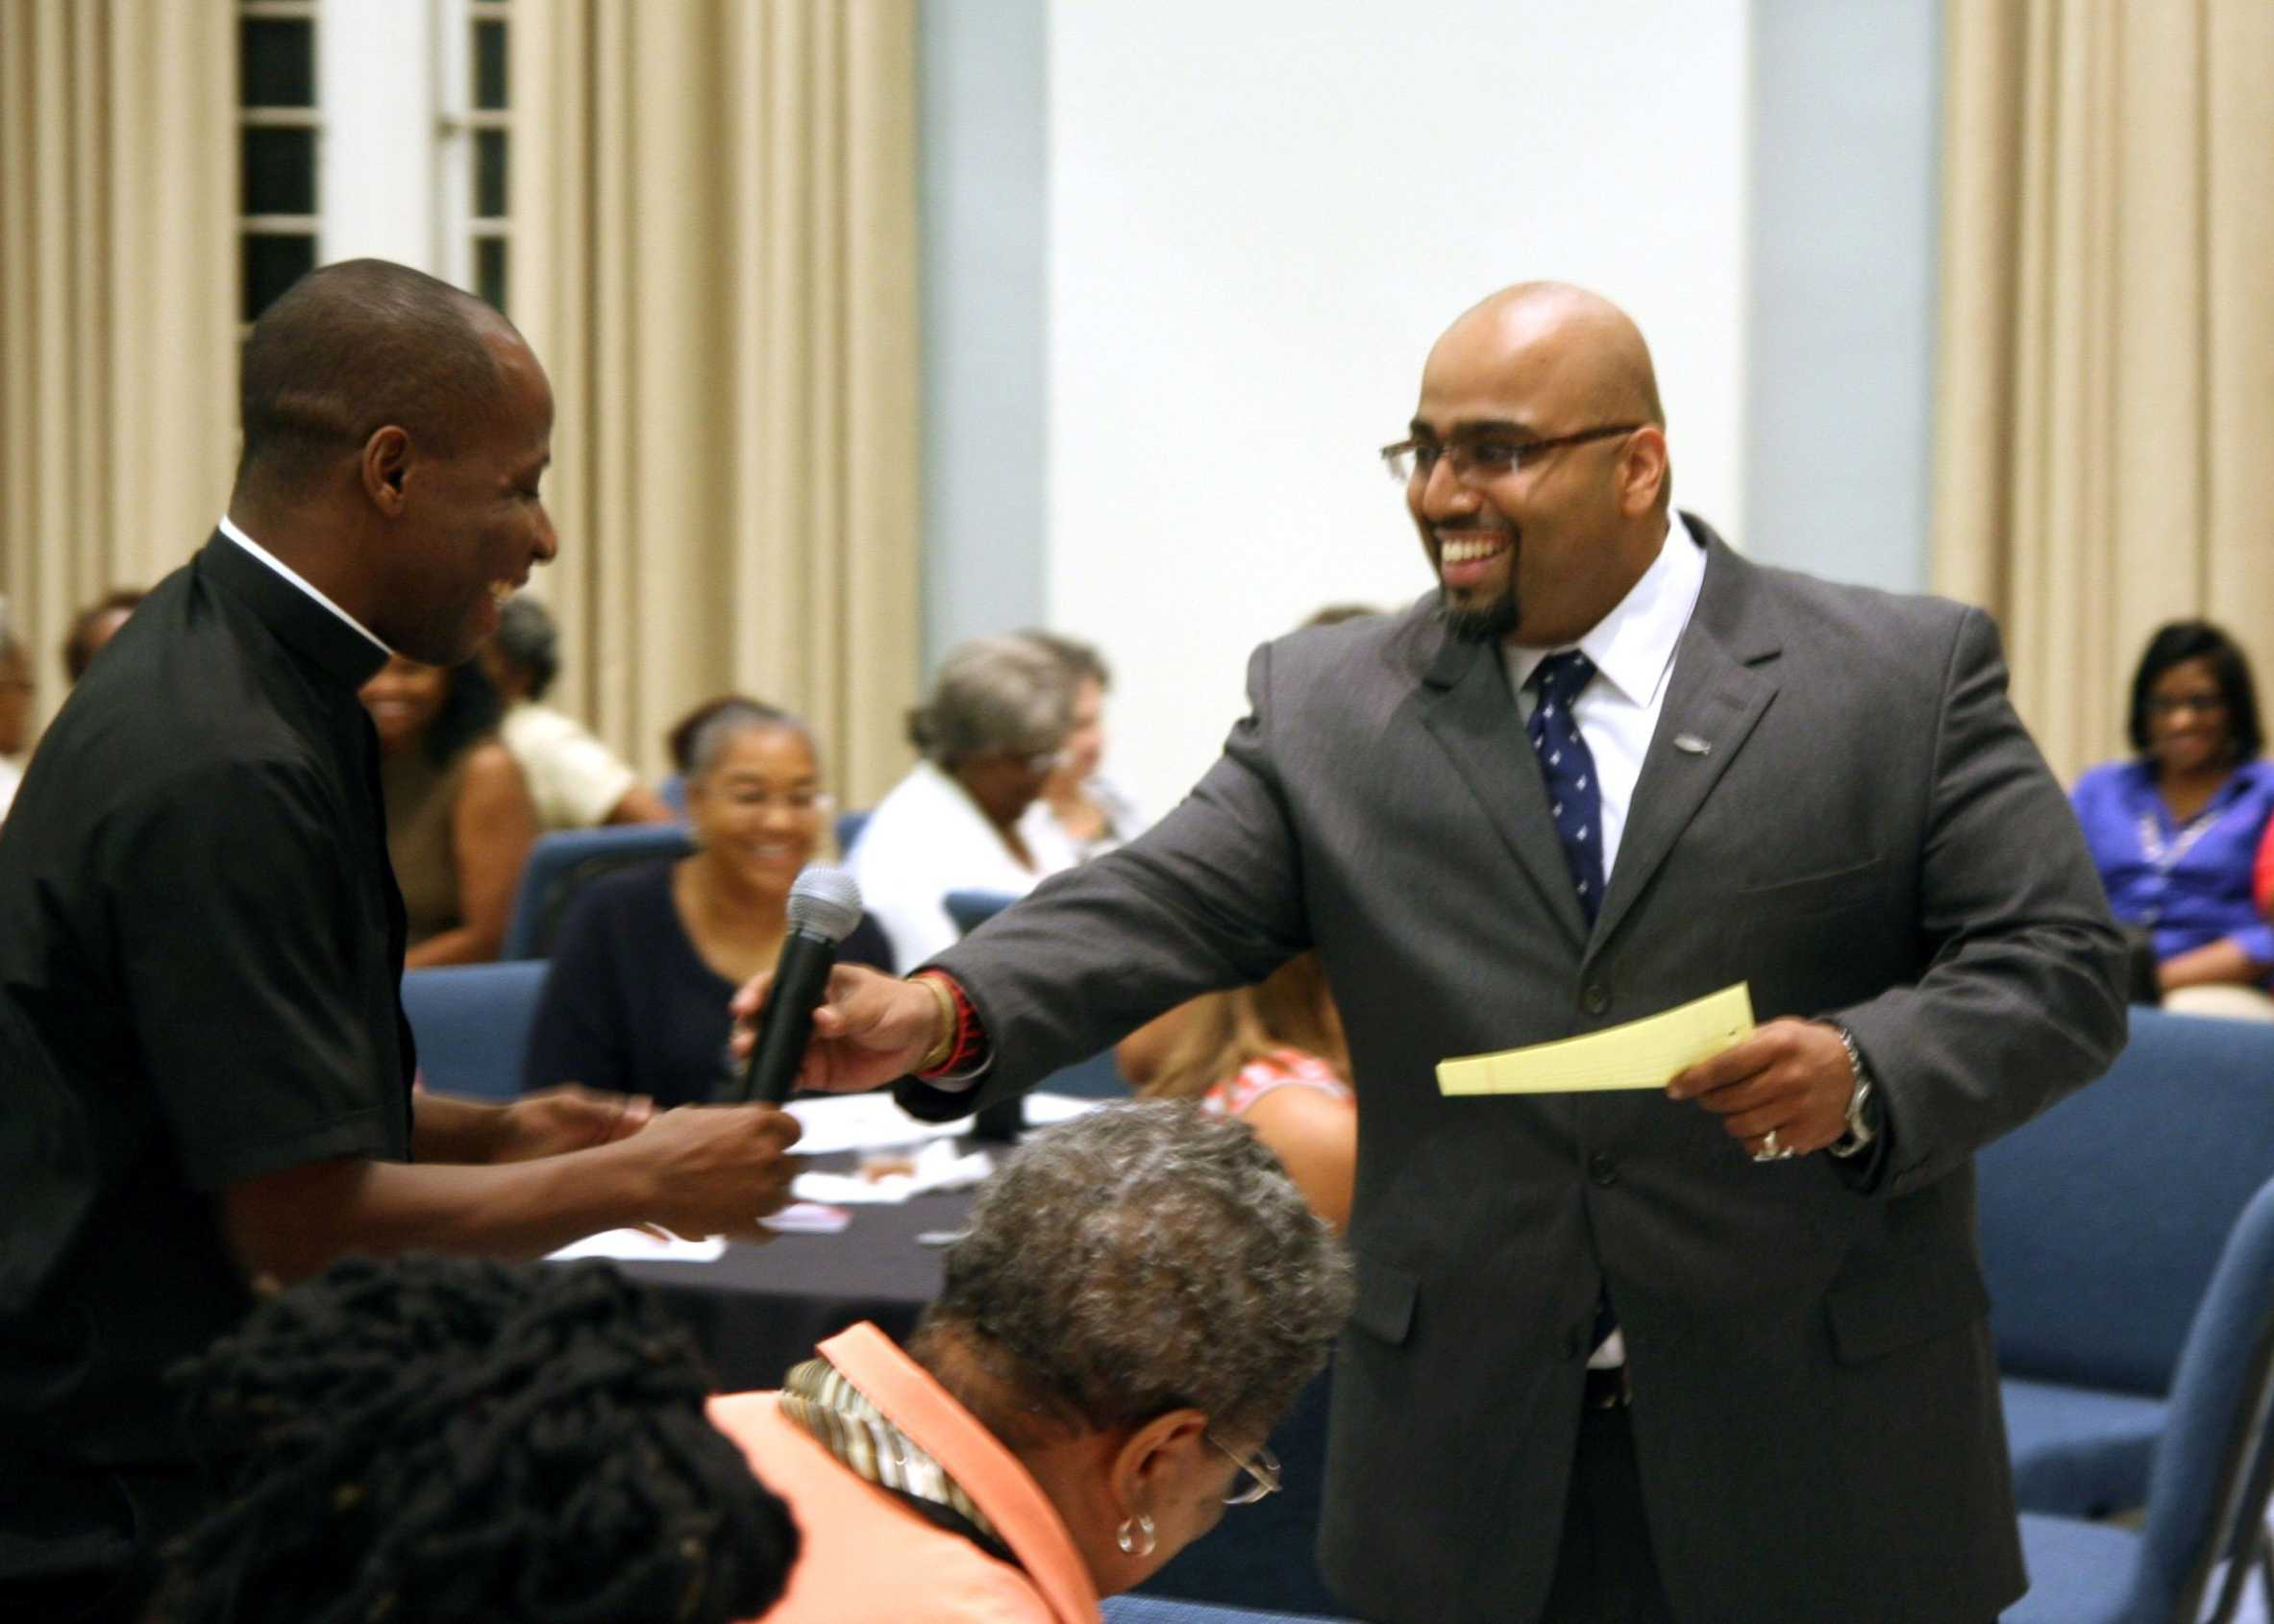 Reverend Etido Jerome (left) shares the microphone with Ansel Augustine (right) at a talk about faith and the youth on Thursday, Aug. 8.  Augustine has worked with youth organizations since 2002 after he graduated from Loyola two years prior.